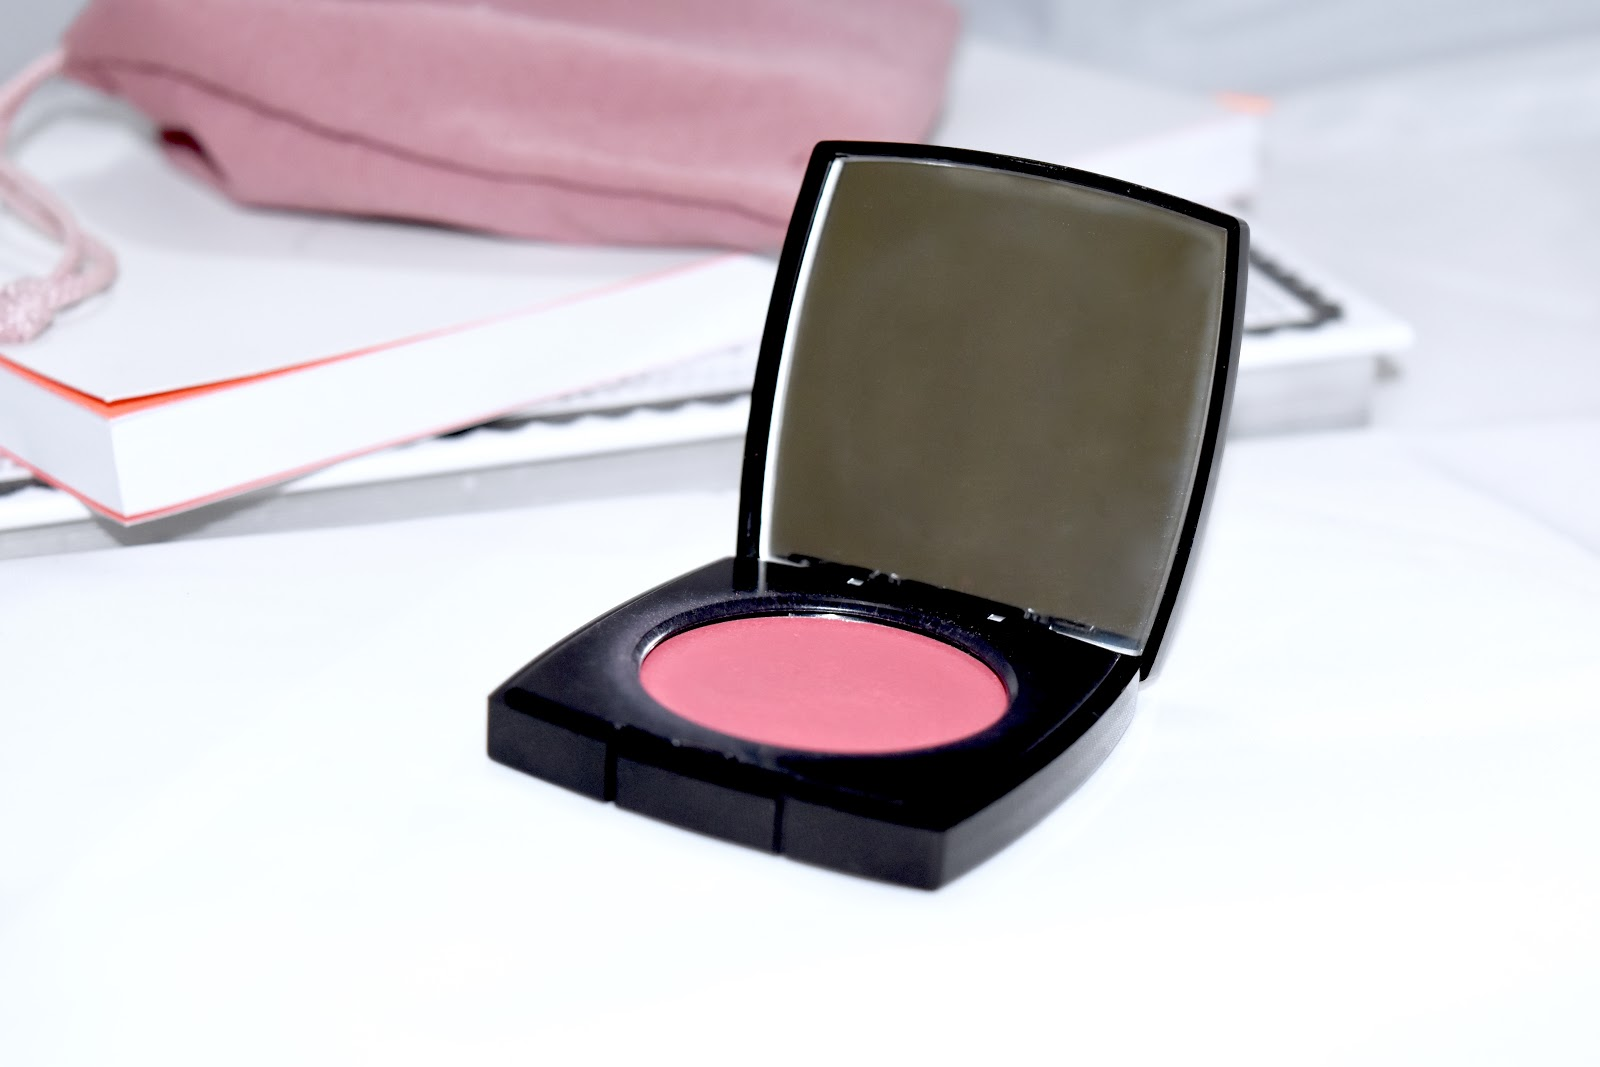 Chanel Makeup Blush